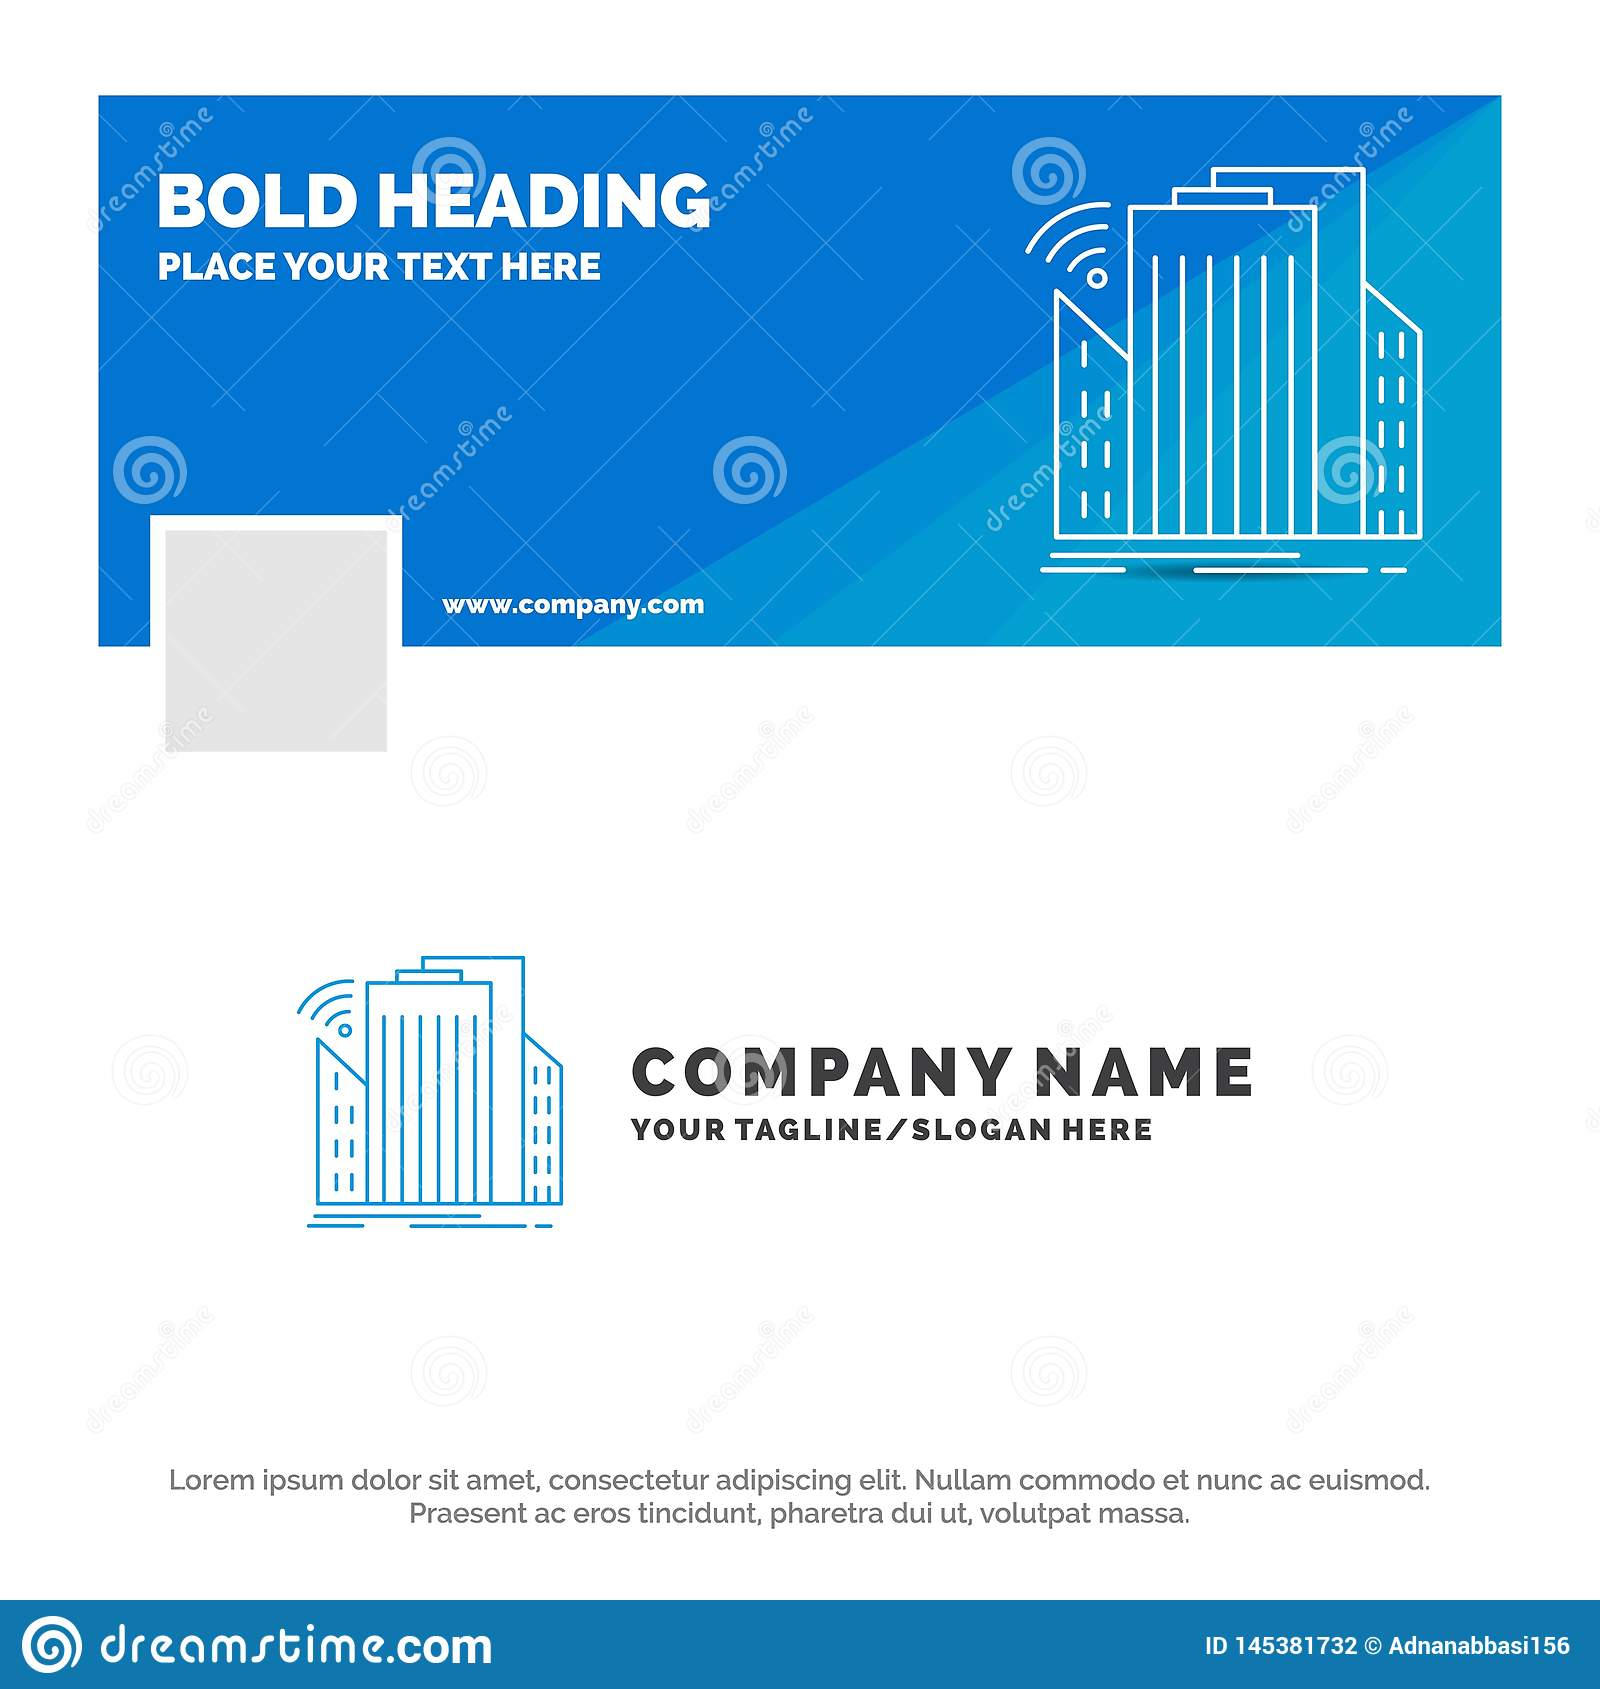 Blue Business Logo Template for Buildings, city, sensor, smart, urban. Facebook Timeline Banner Design. vector web banner